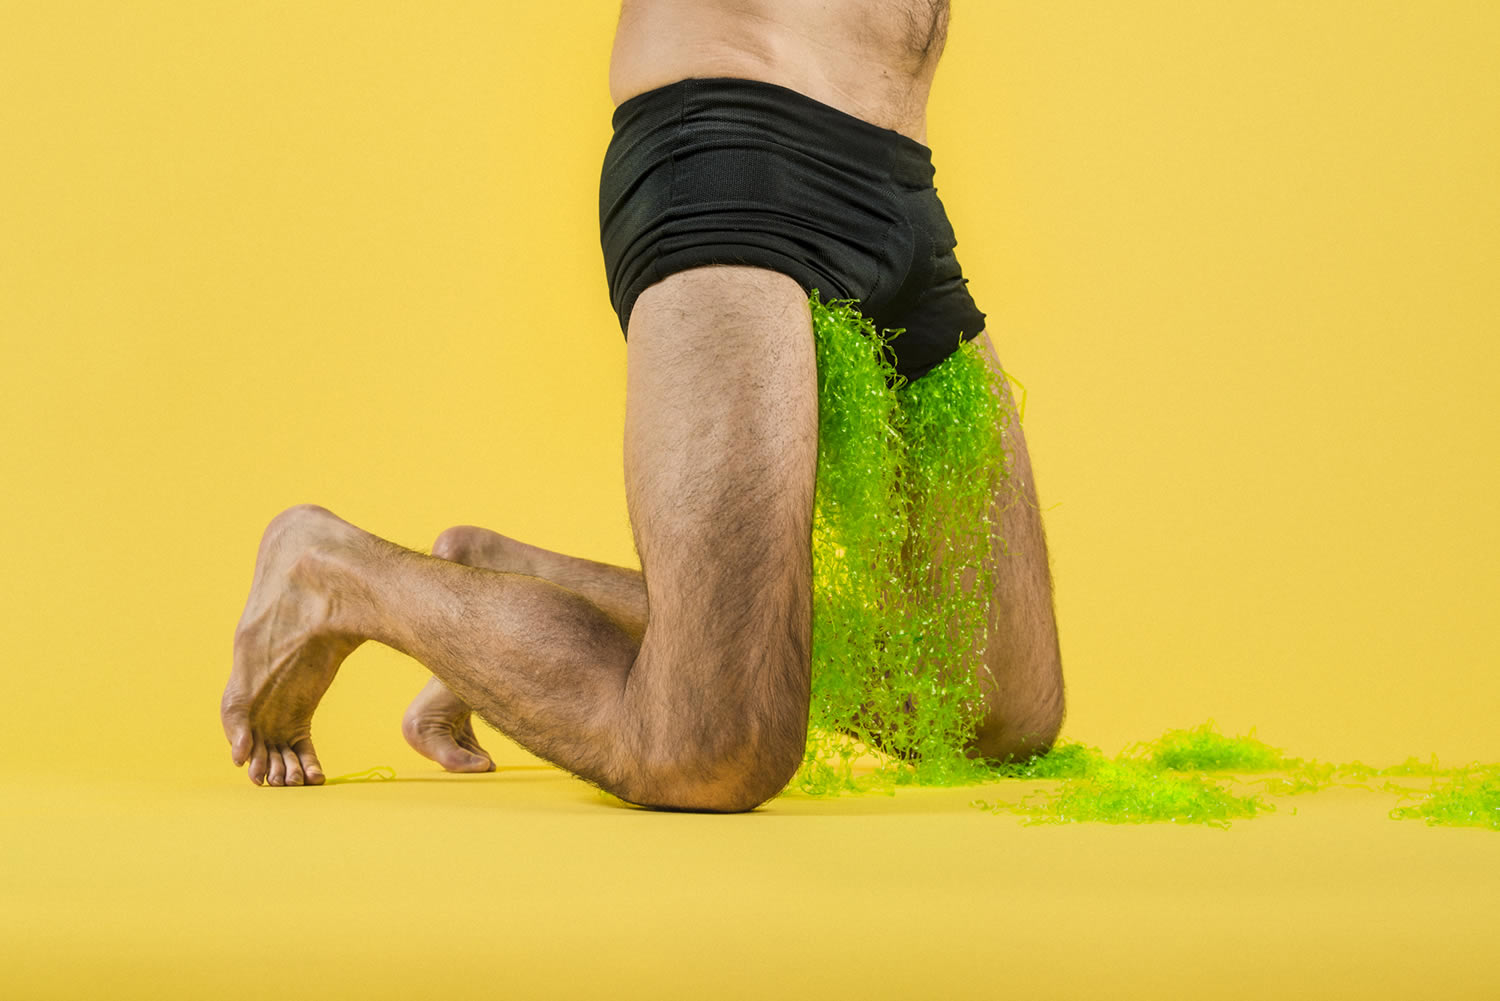 green liquid flowing out of men's shorts, photography